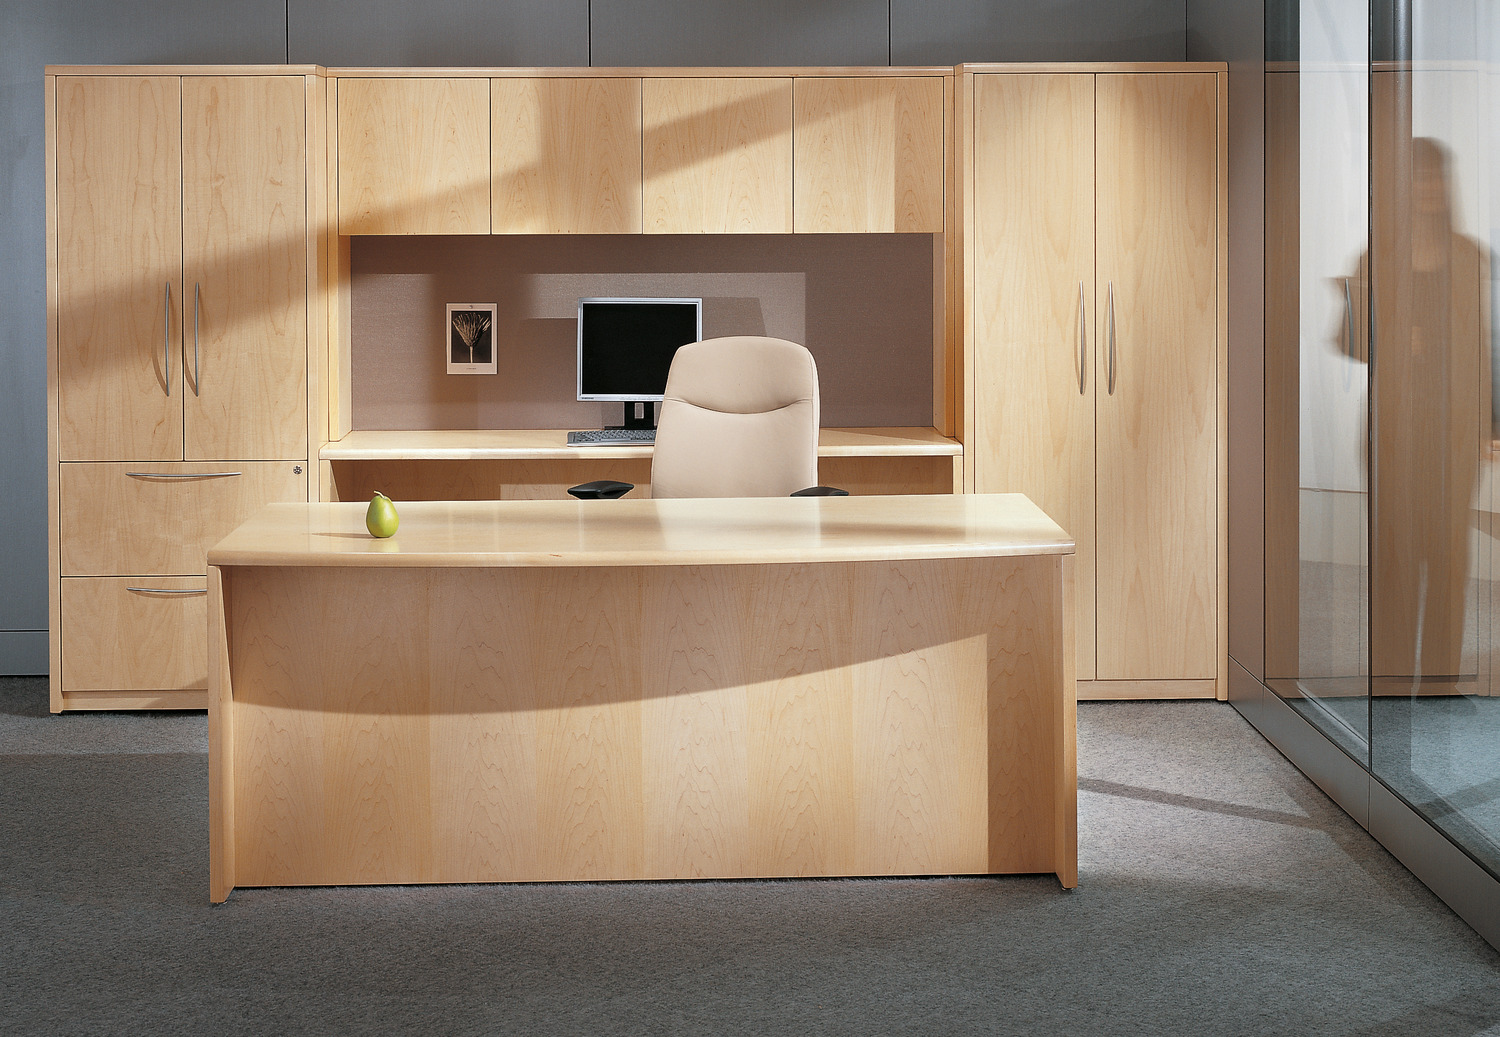 Cana Executive Office Furniture in Light Wood